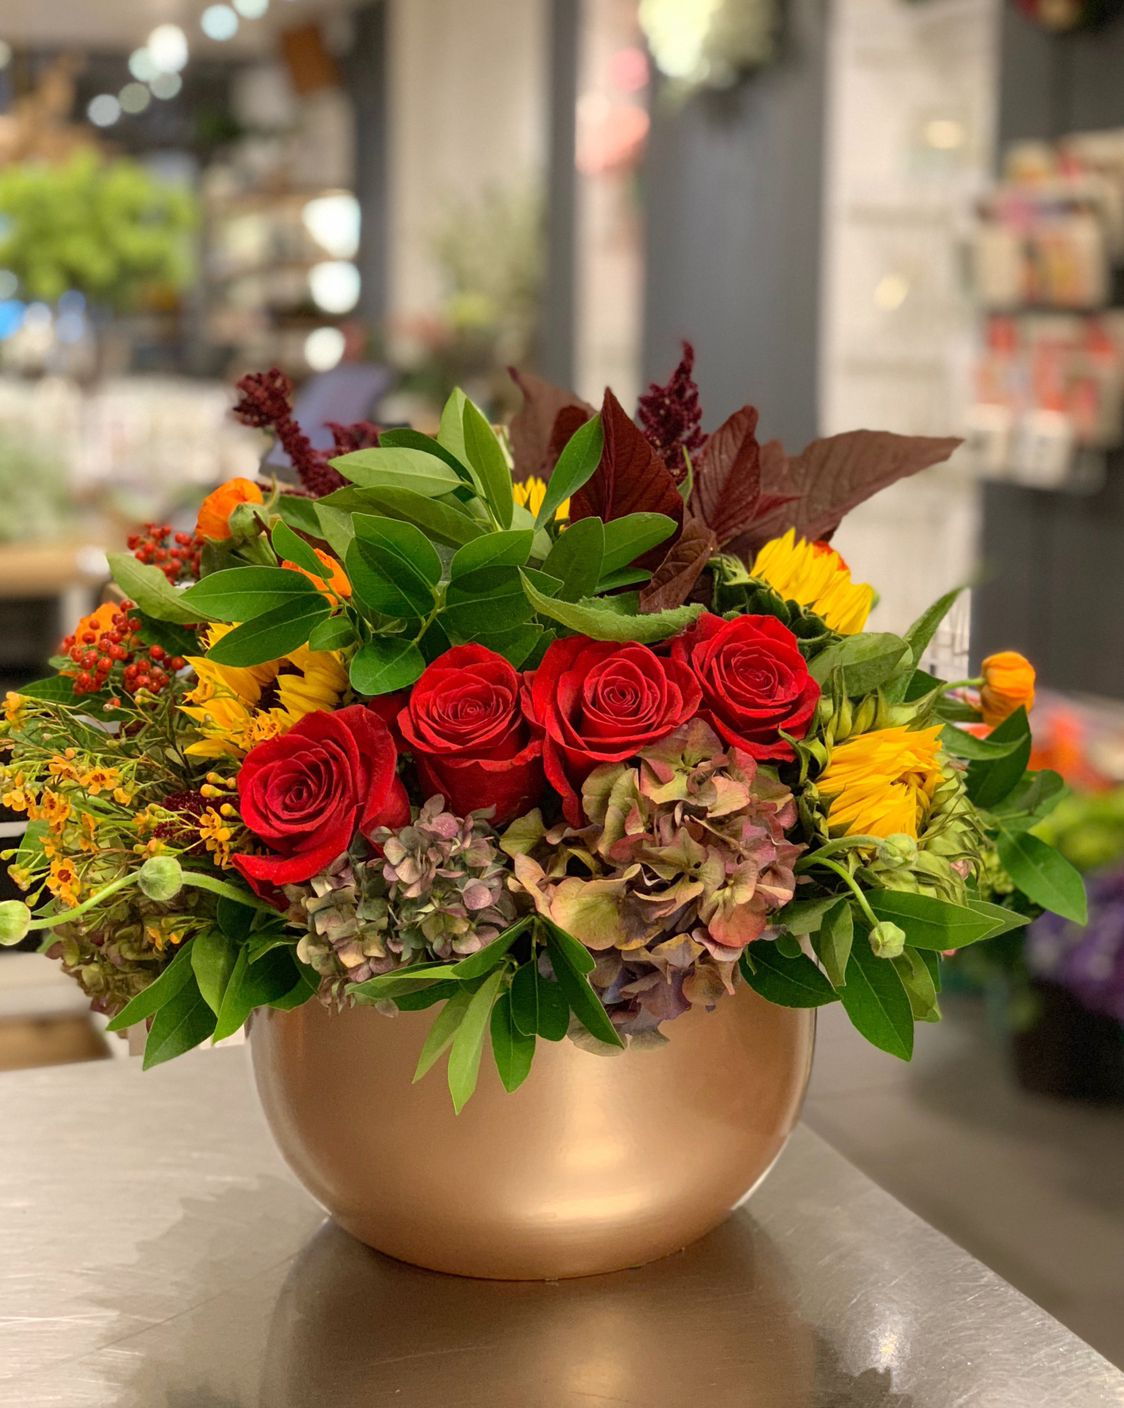 Red roses, sunflowers, celosías and proteas in a gold bowl